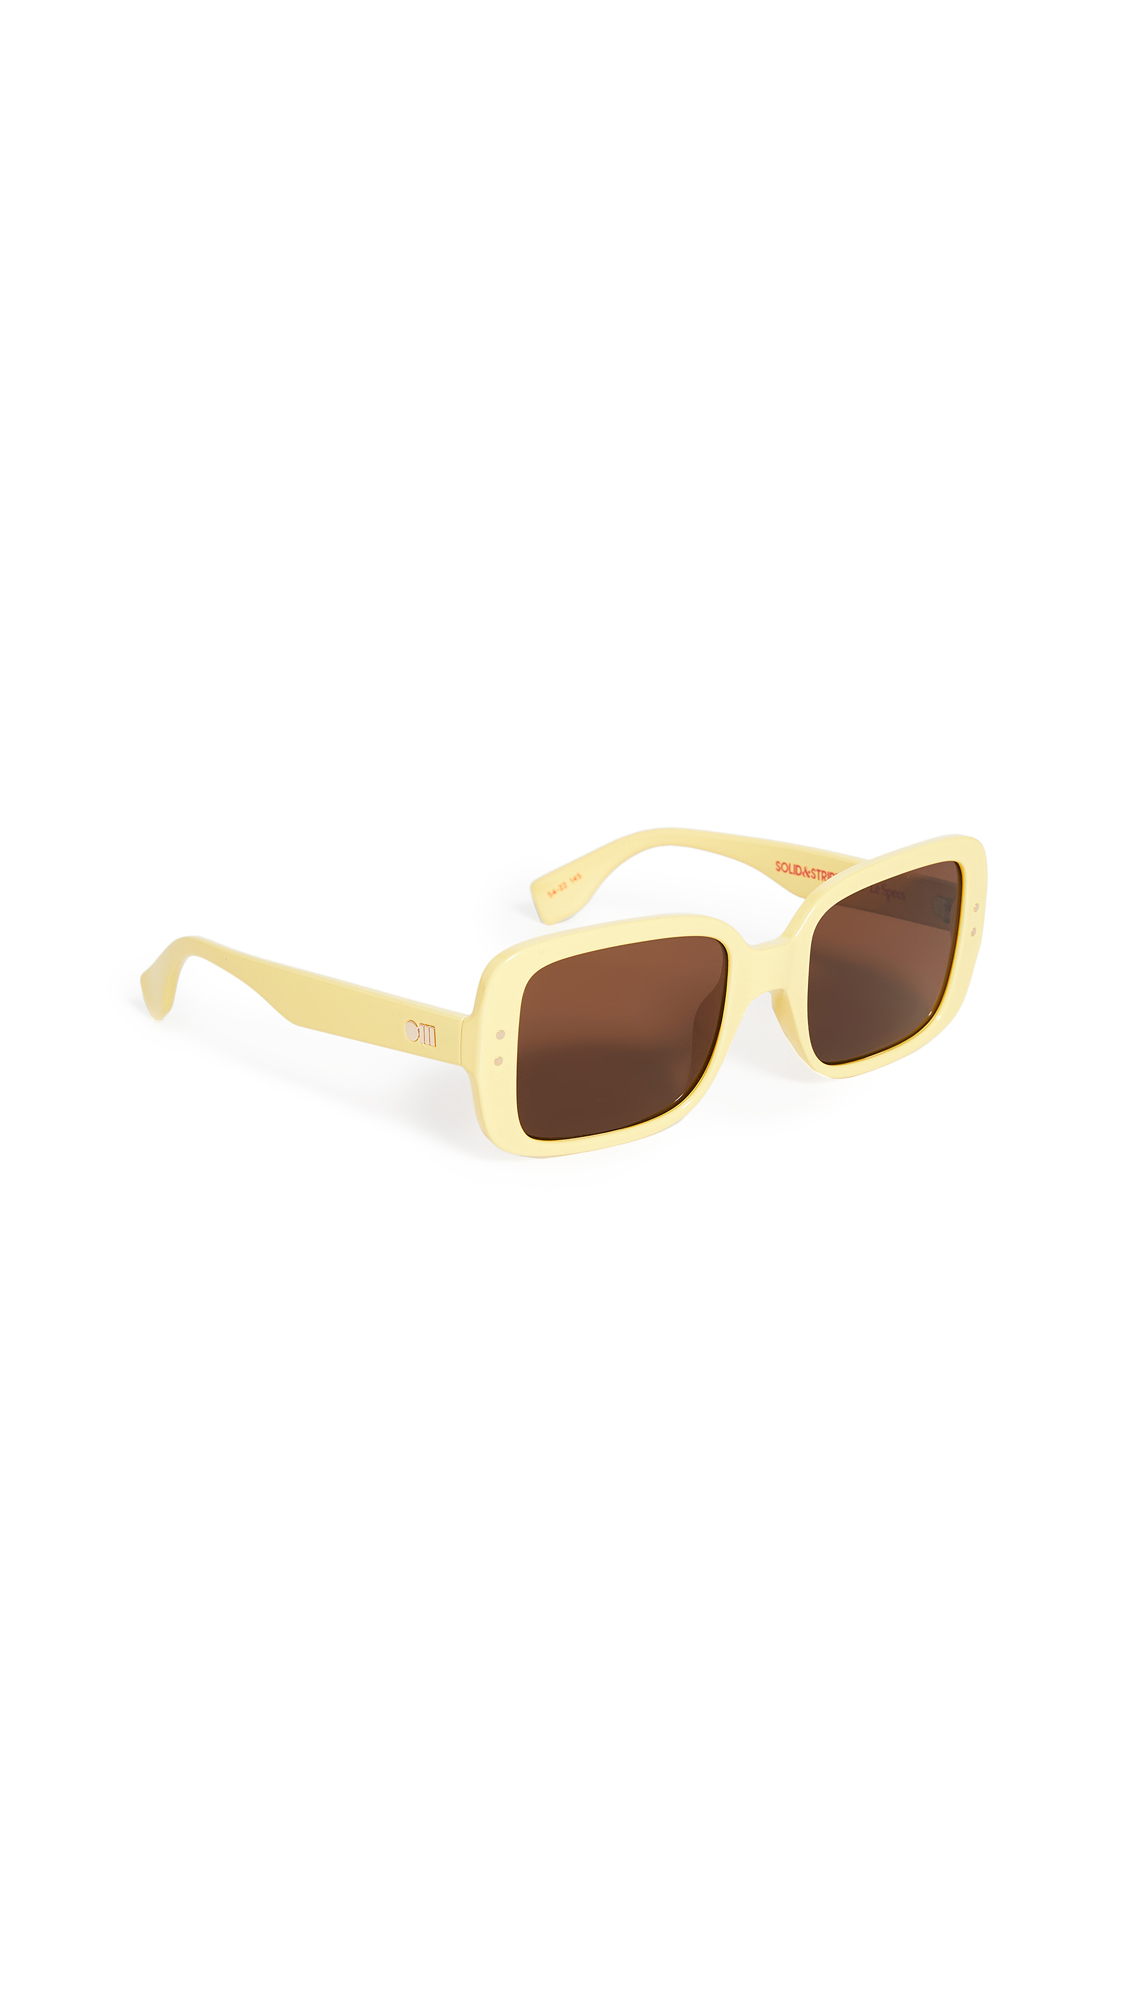 Le Specs X Solid & Striped Saline Sunglasses In Yellow/brown Mono